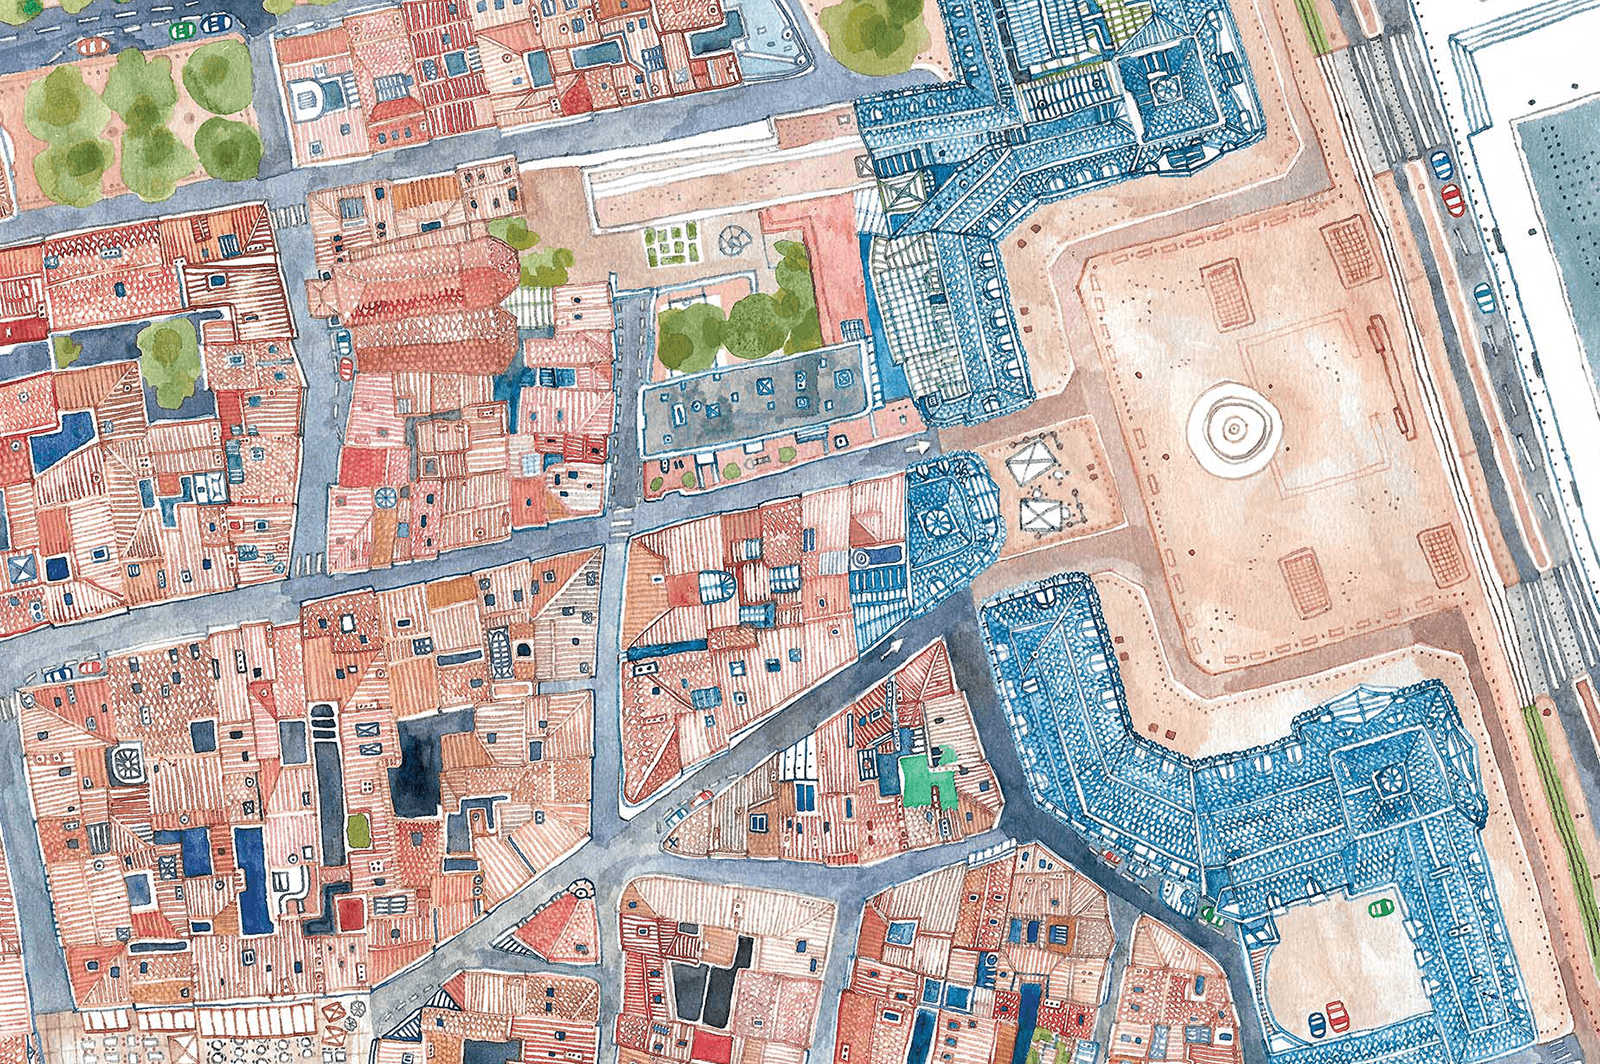 Illustrated map of Bordeaux